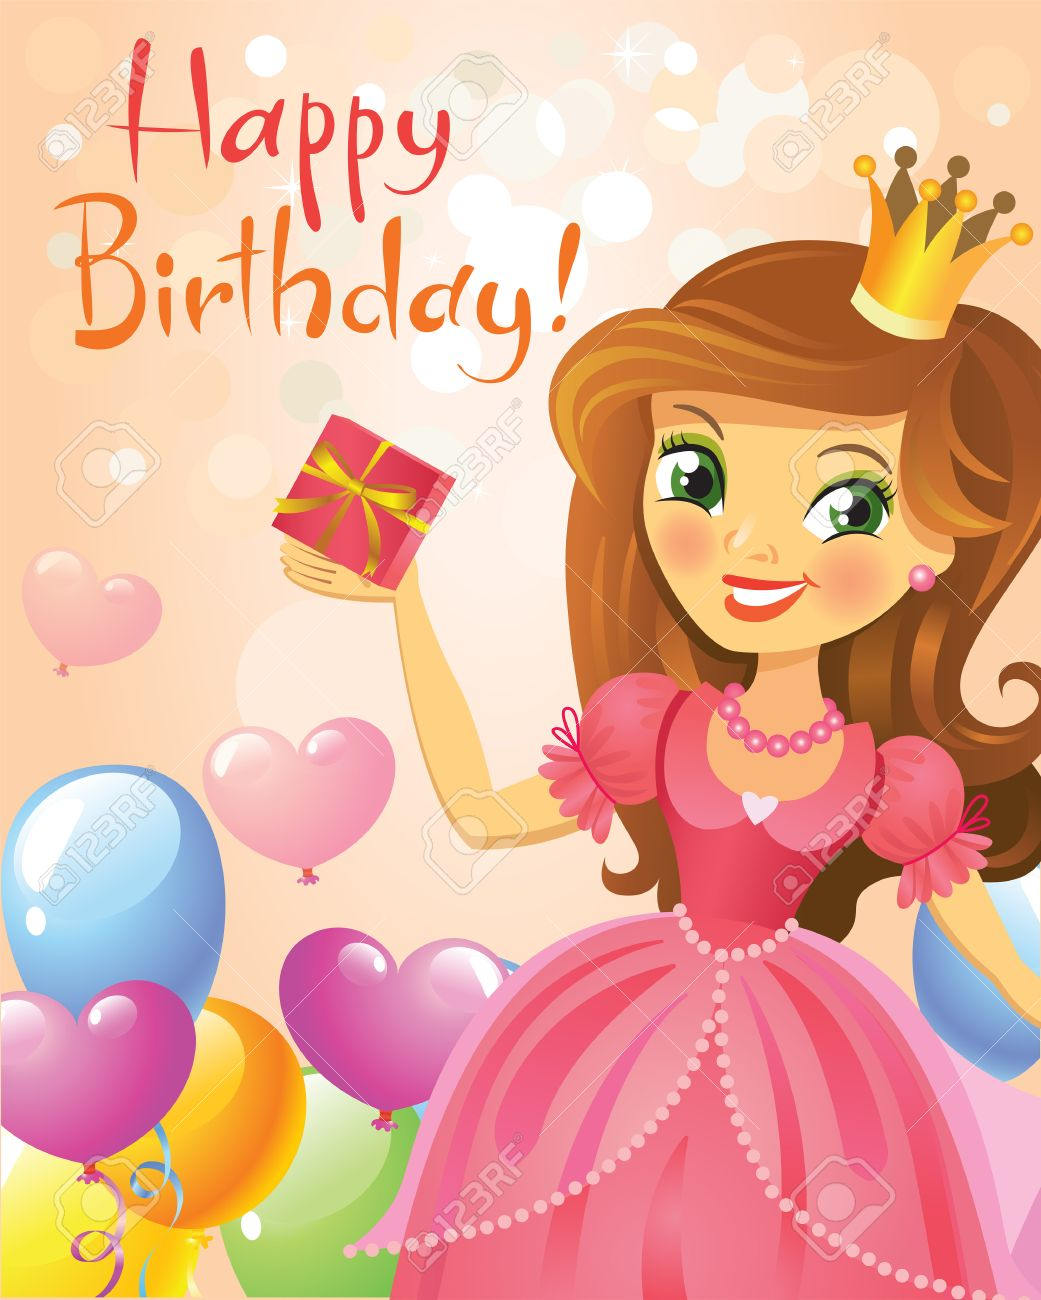 happy birthday, princess, greeting card. royalty free cliparts, Birthday card